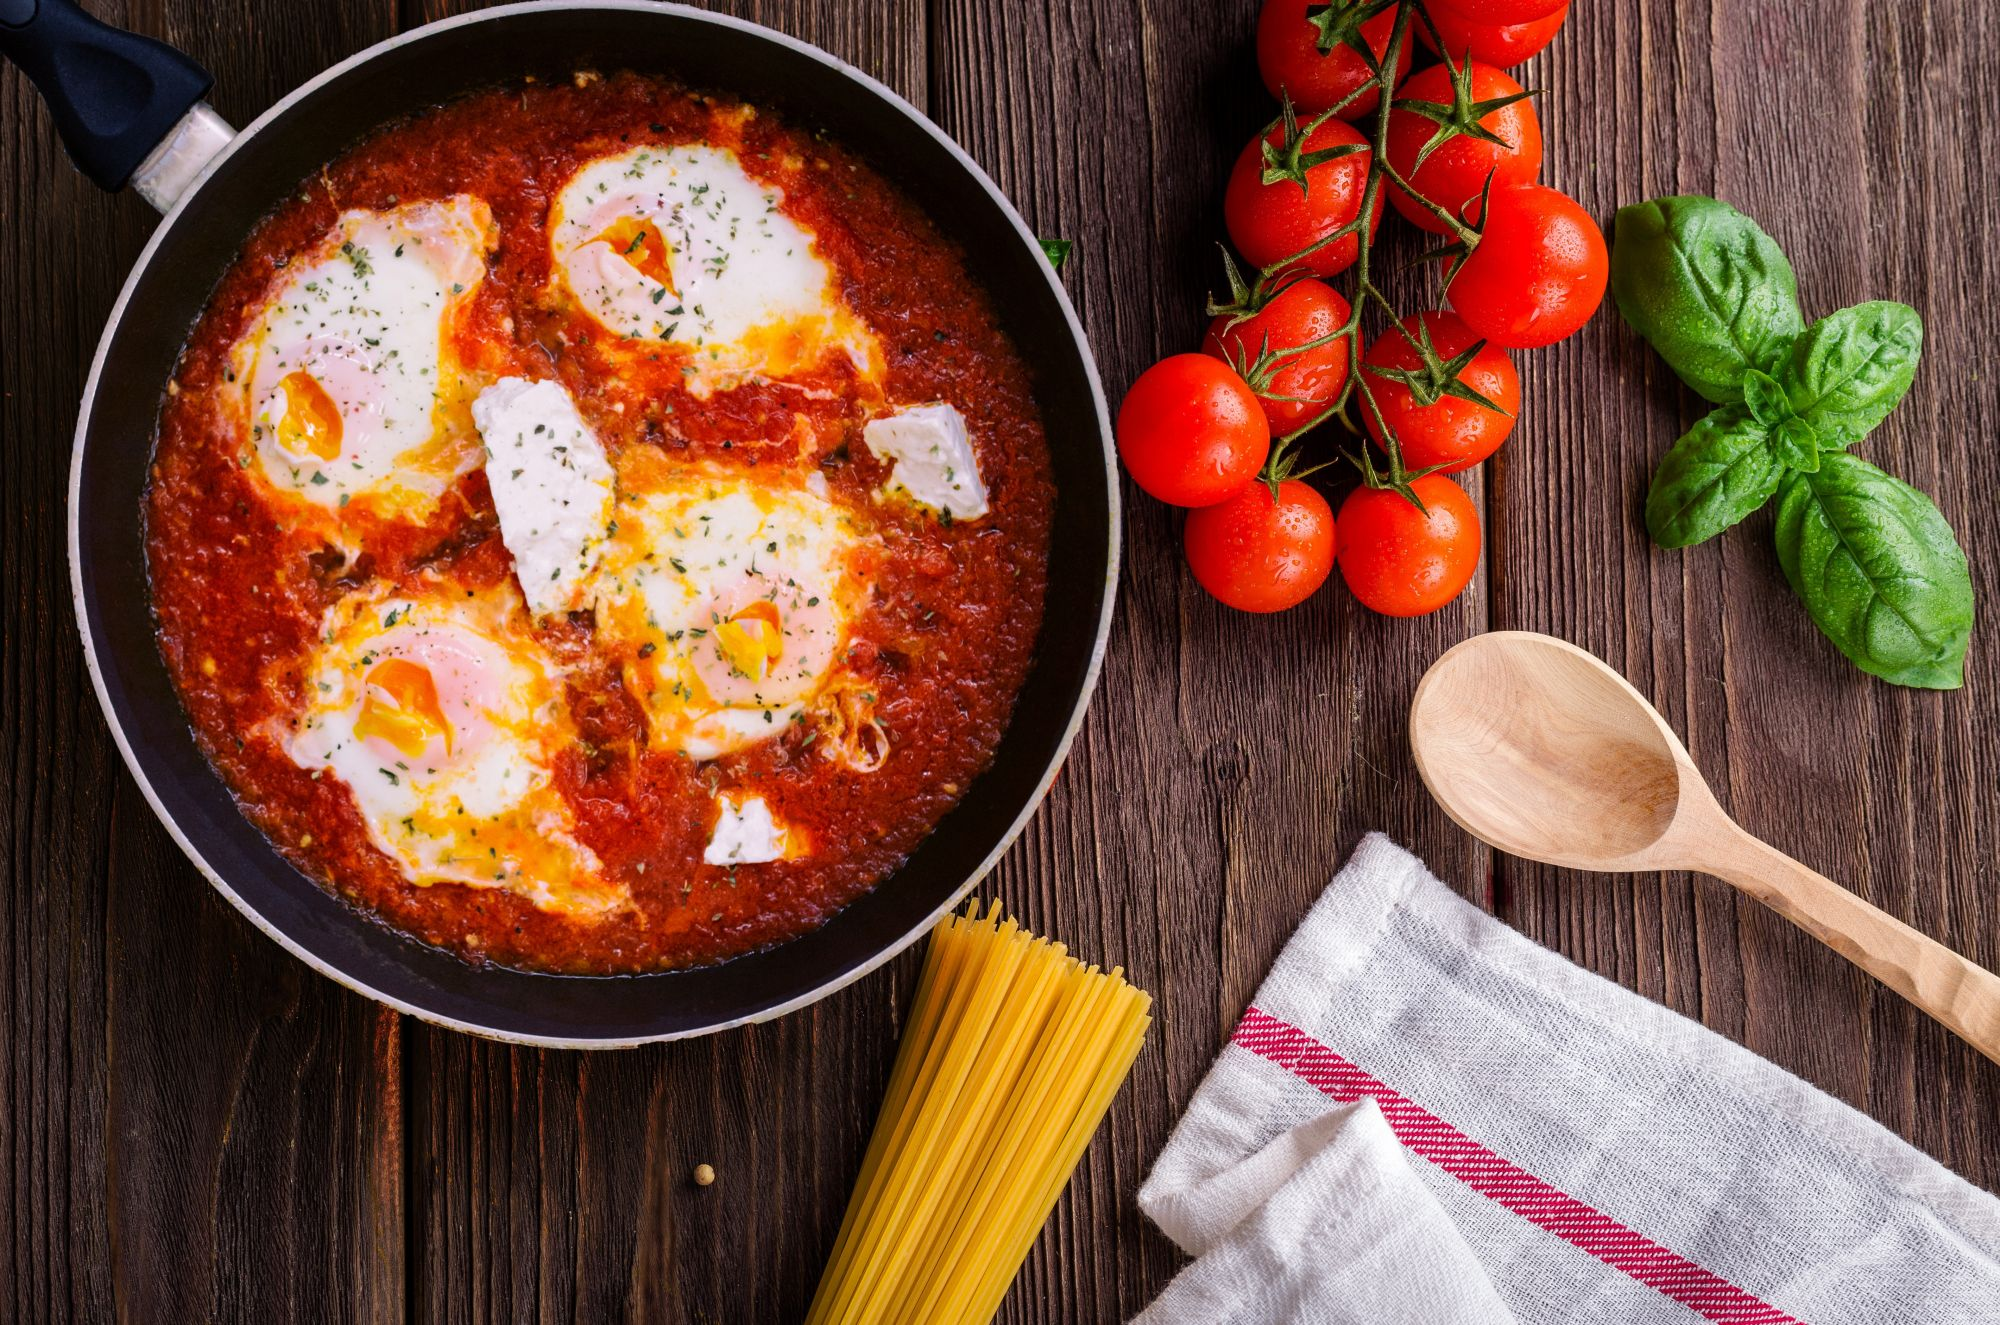 Simple Egg Recipes From Manila's Top Chefs